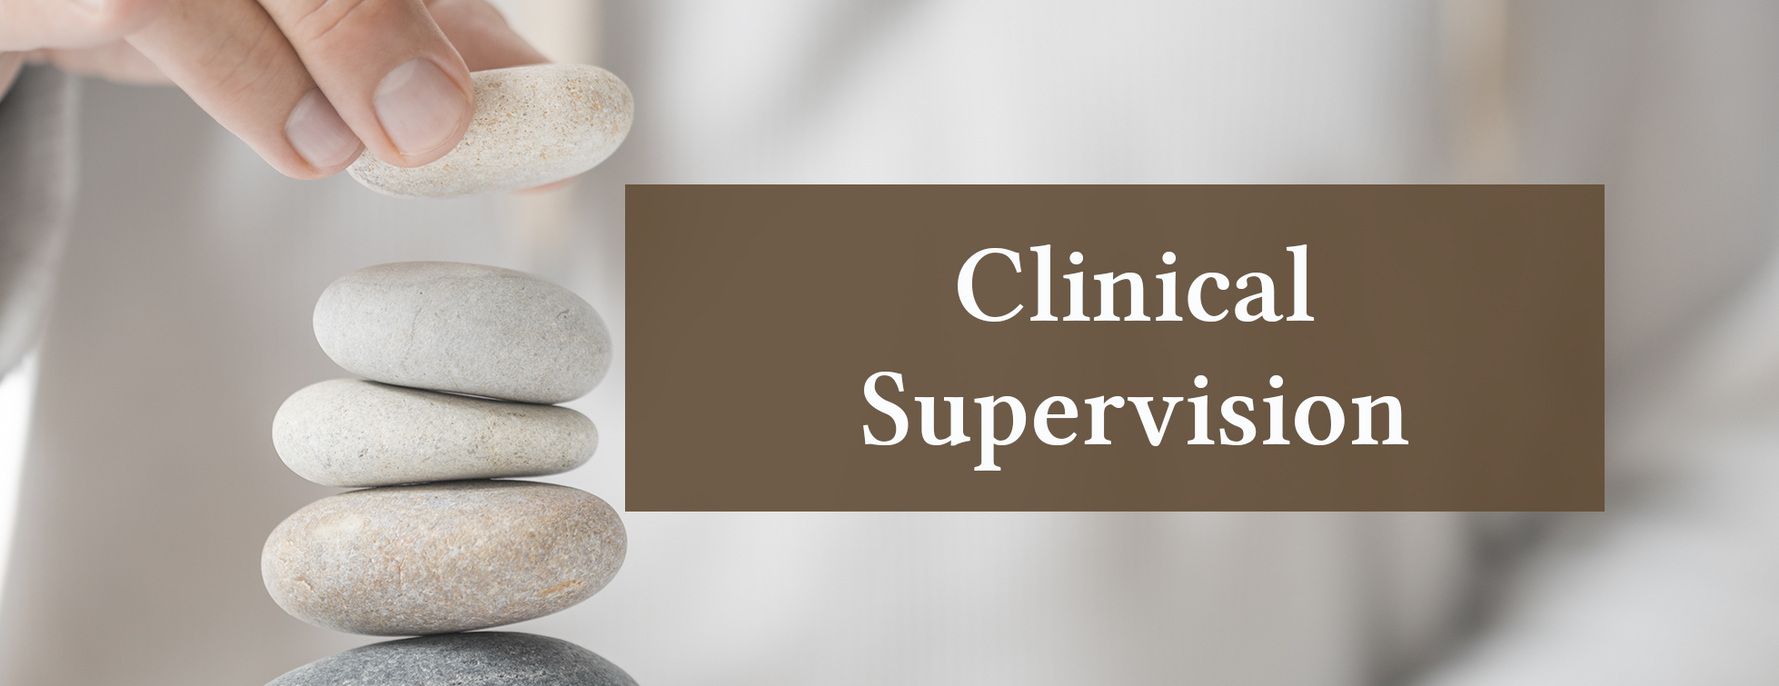 Clinicalsupervision.png